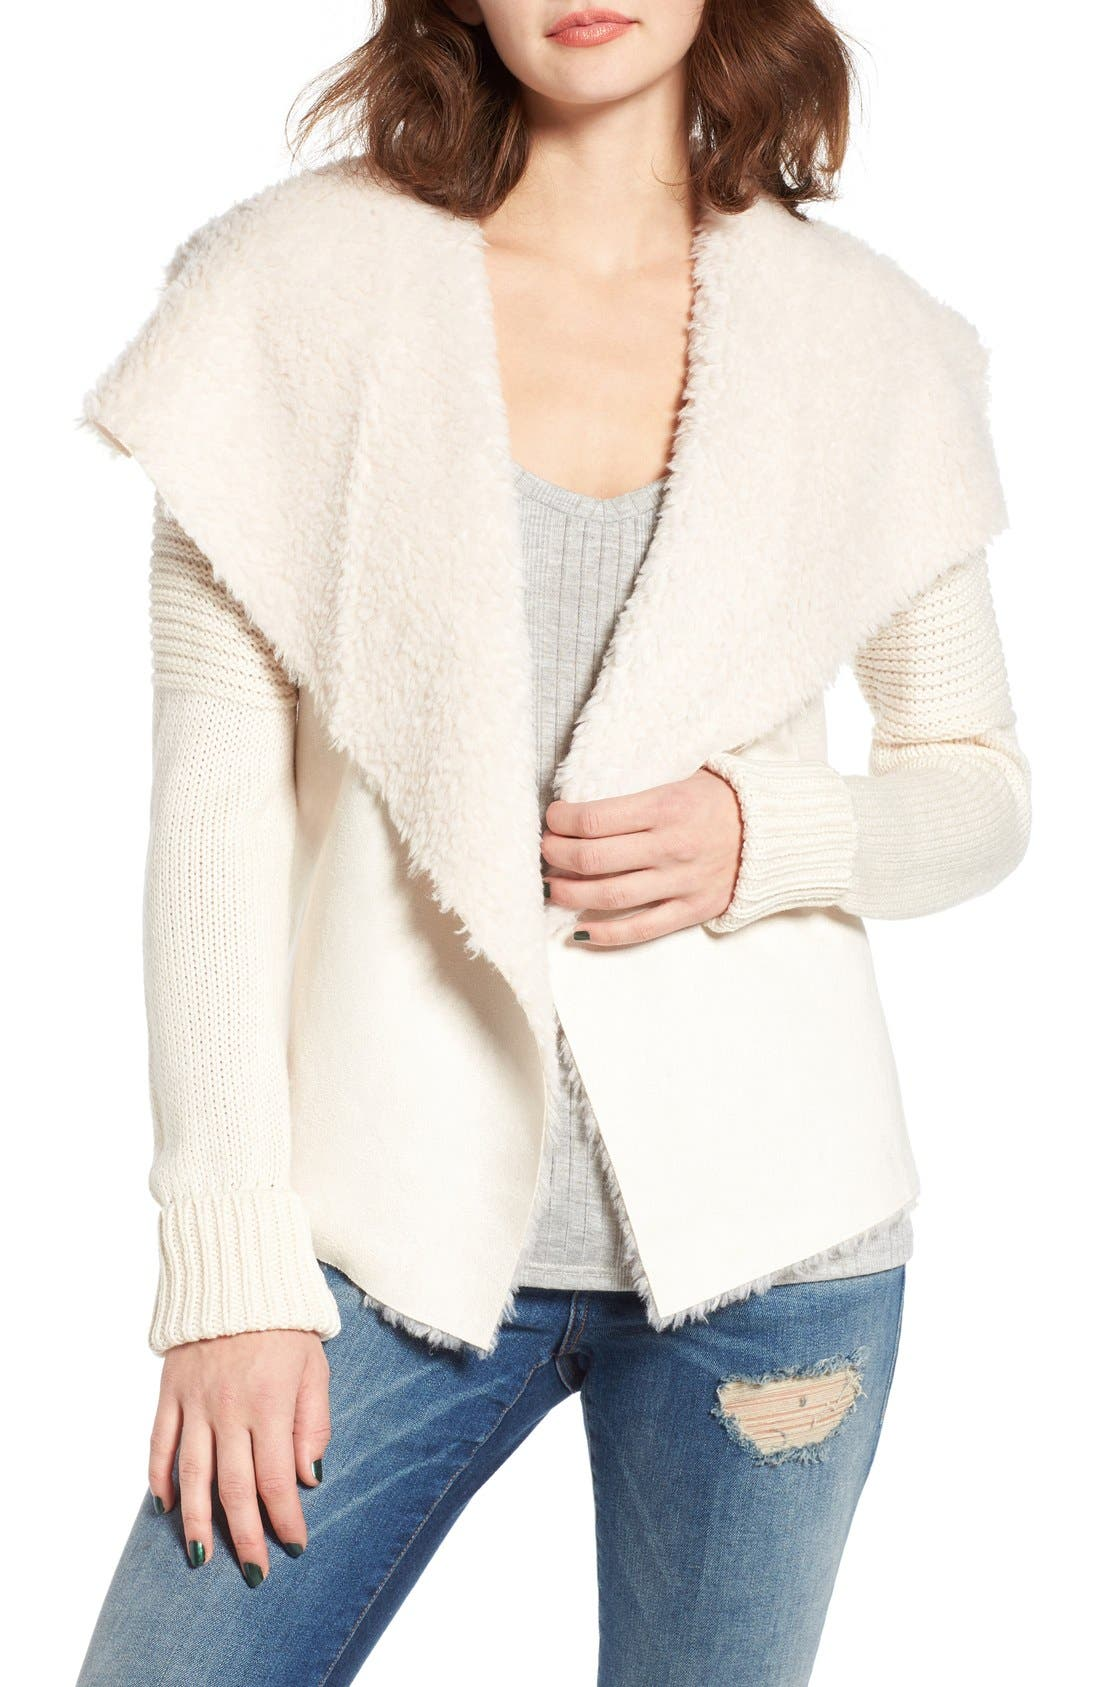 COFFEE SHOP Knit Jacket with Faux Shearling Trim